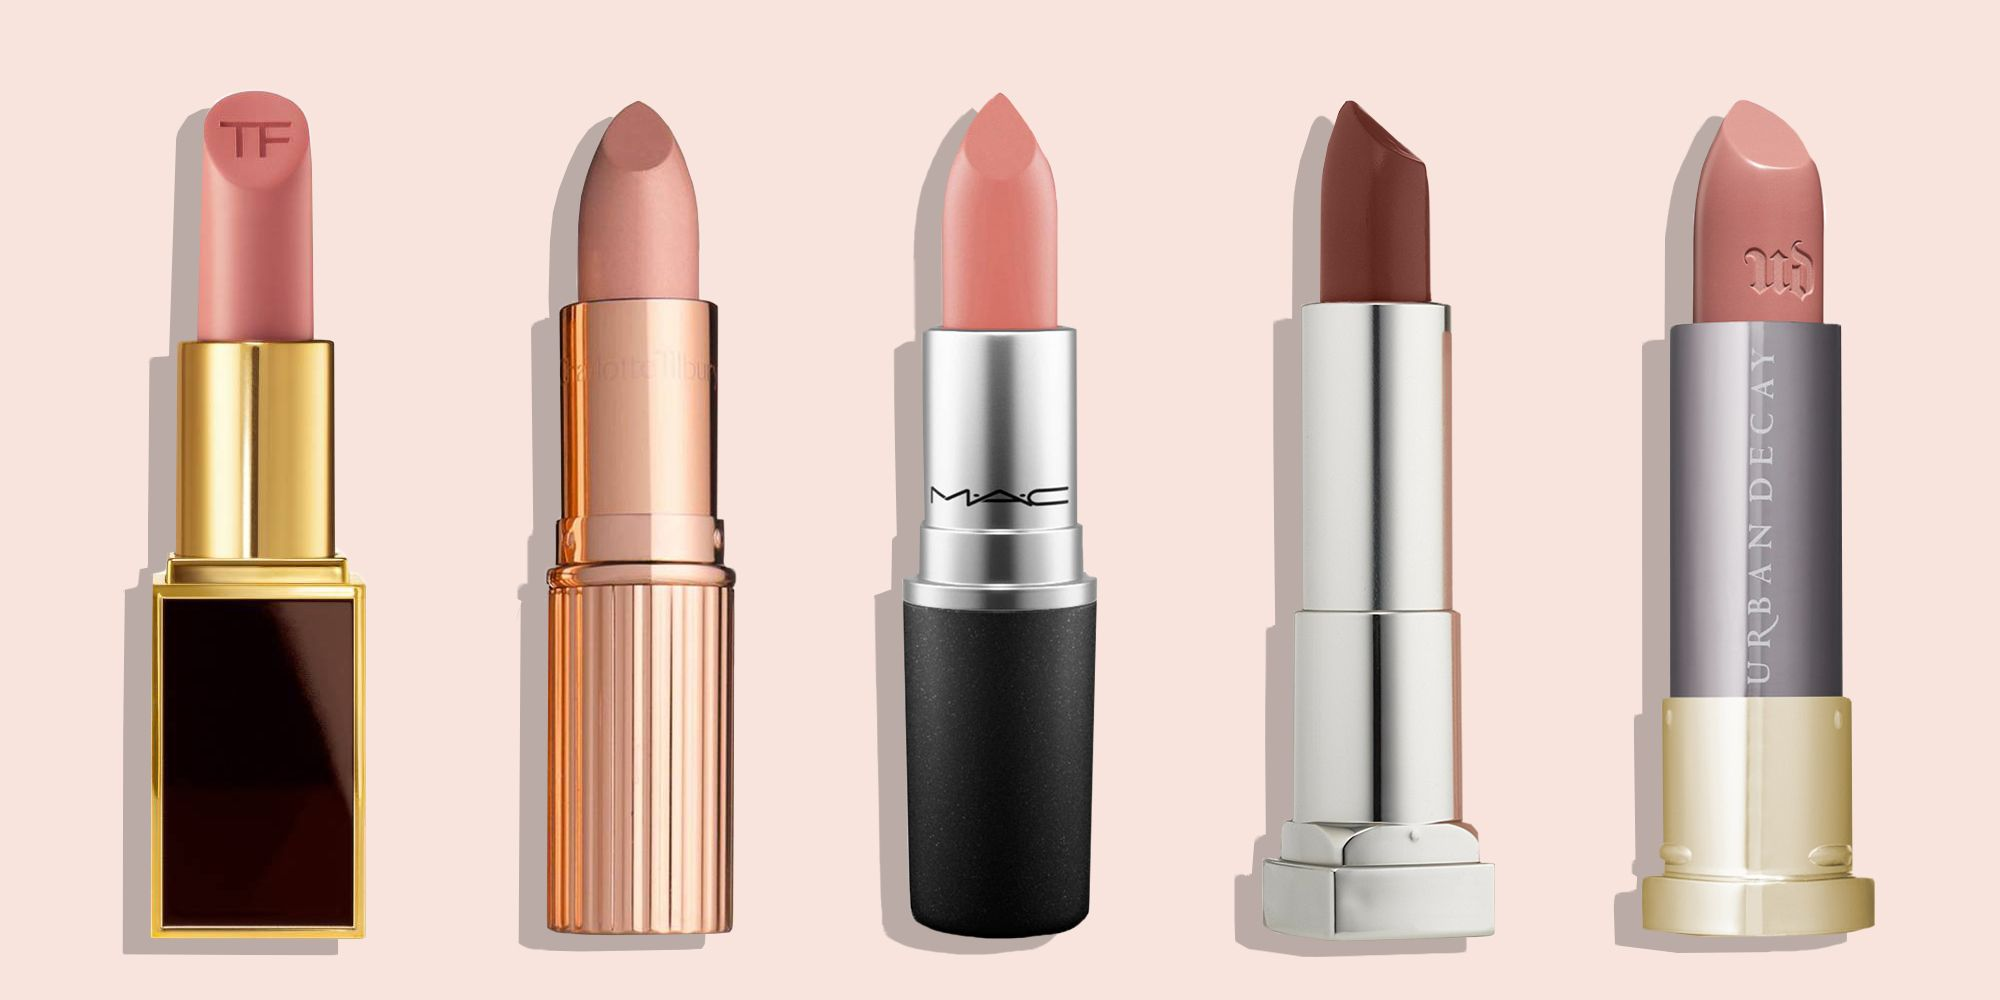 15 Best Nude Lipstick Colors of 2018 - Nude Lipstick Shades for Every Skin Tone